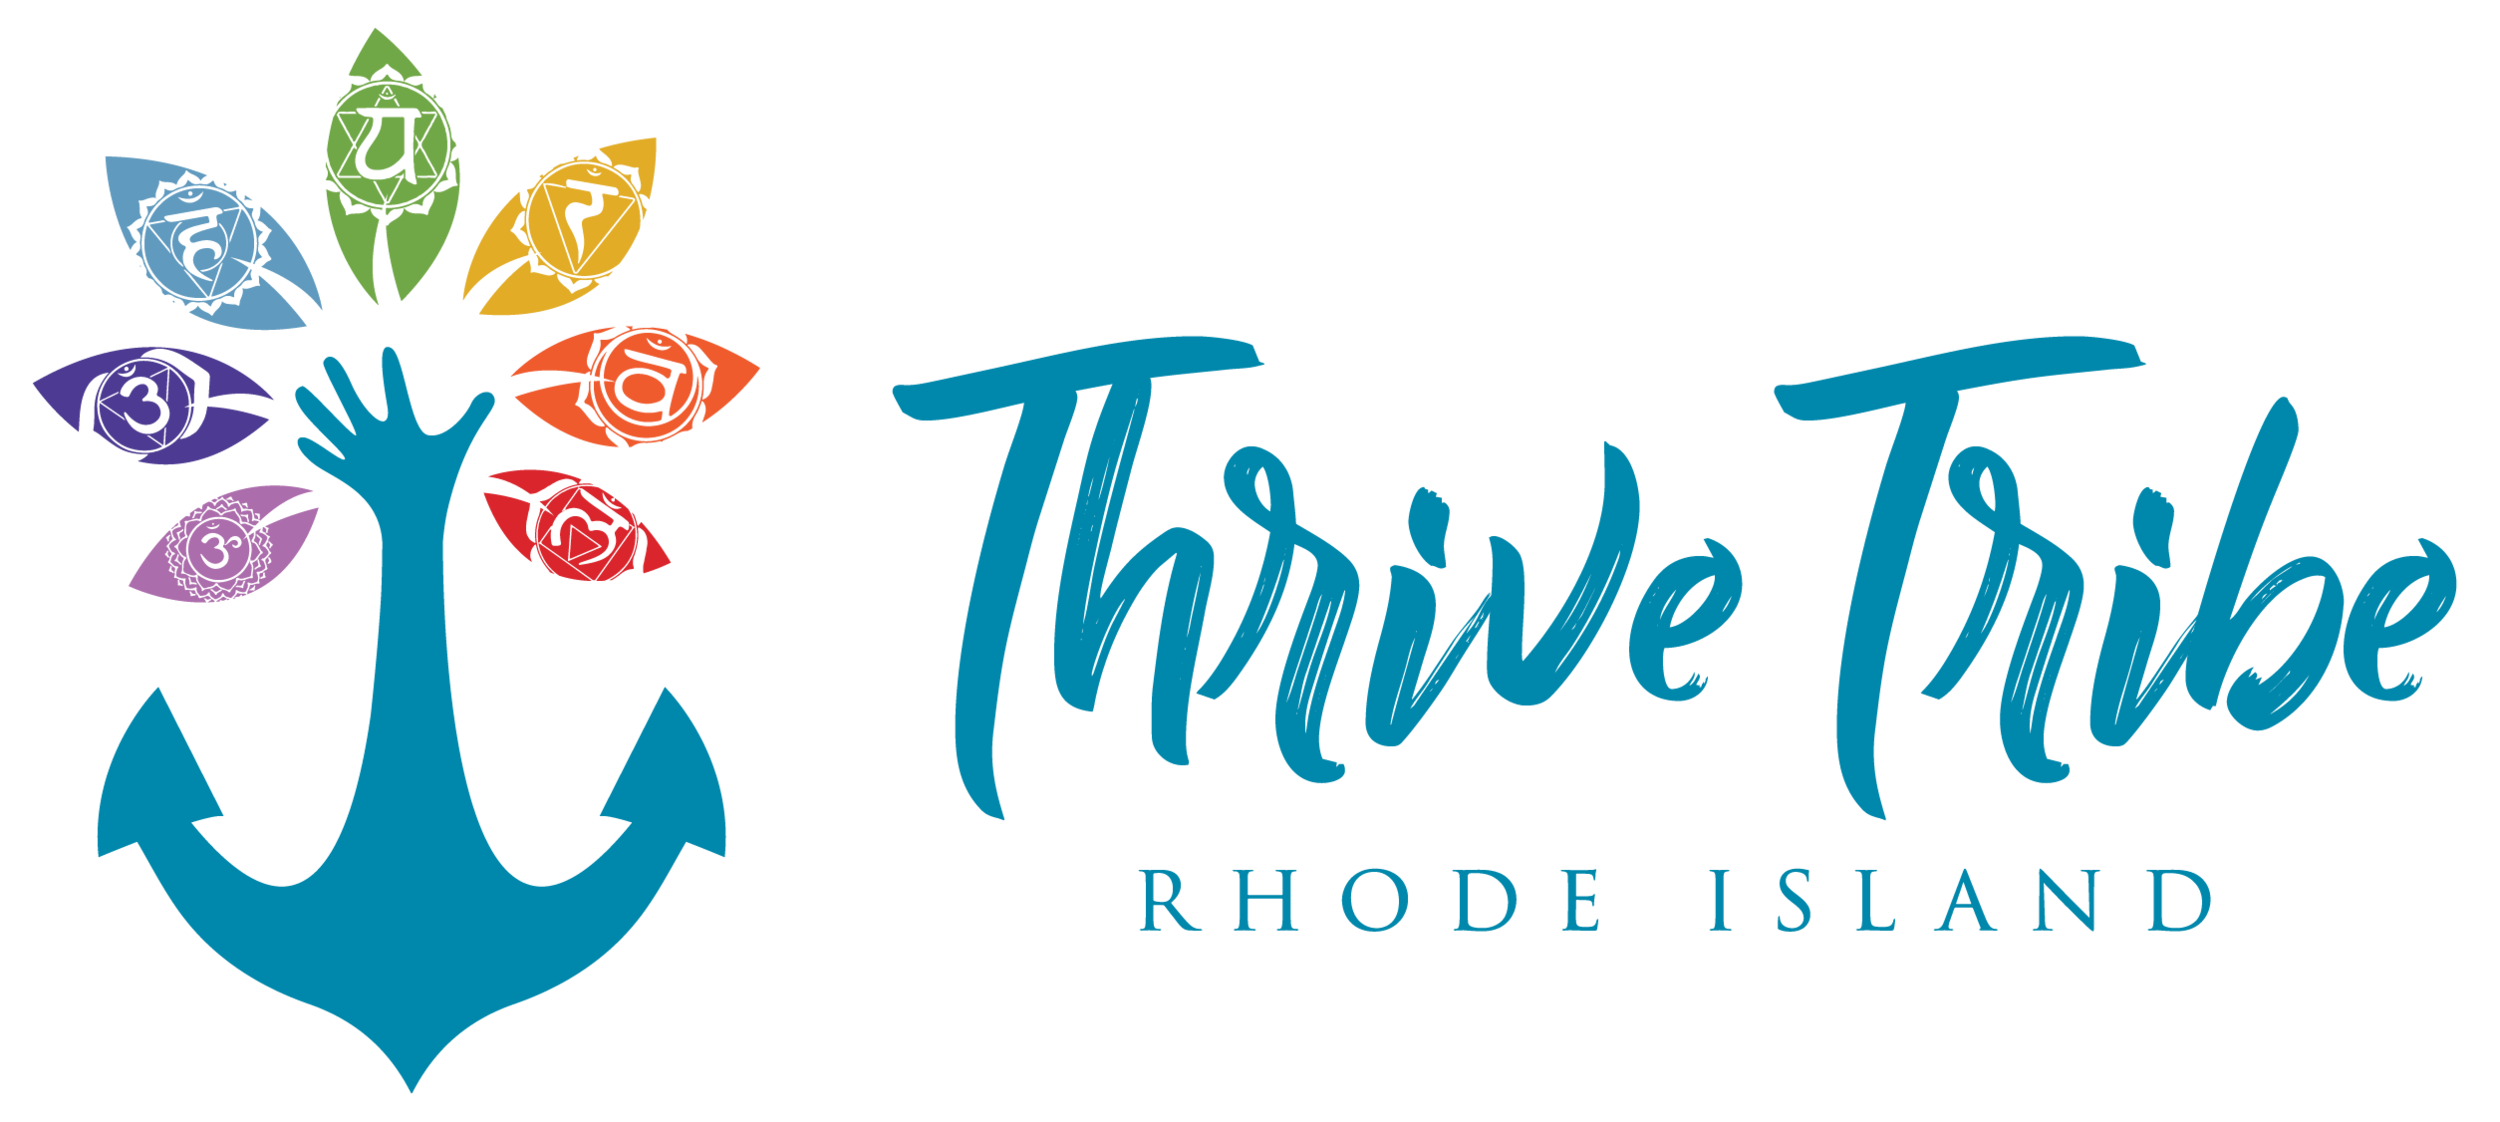 thrive-tribe-logo.png